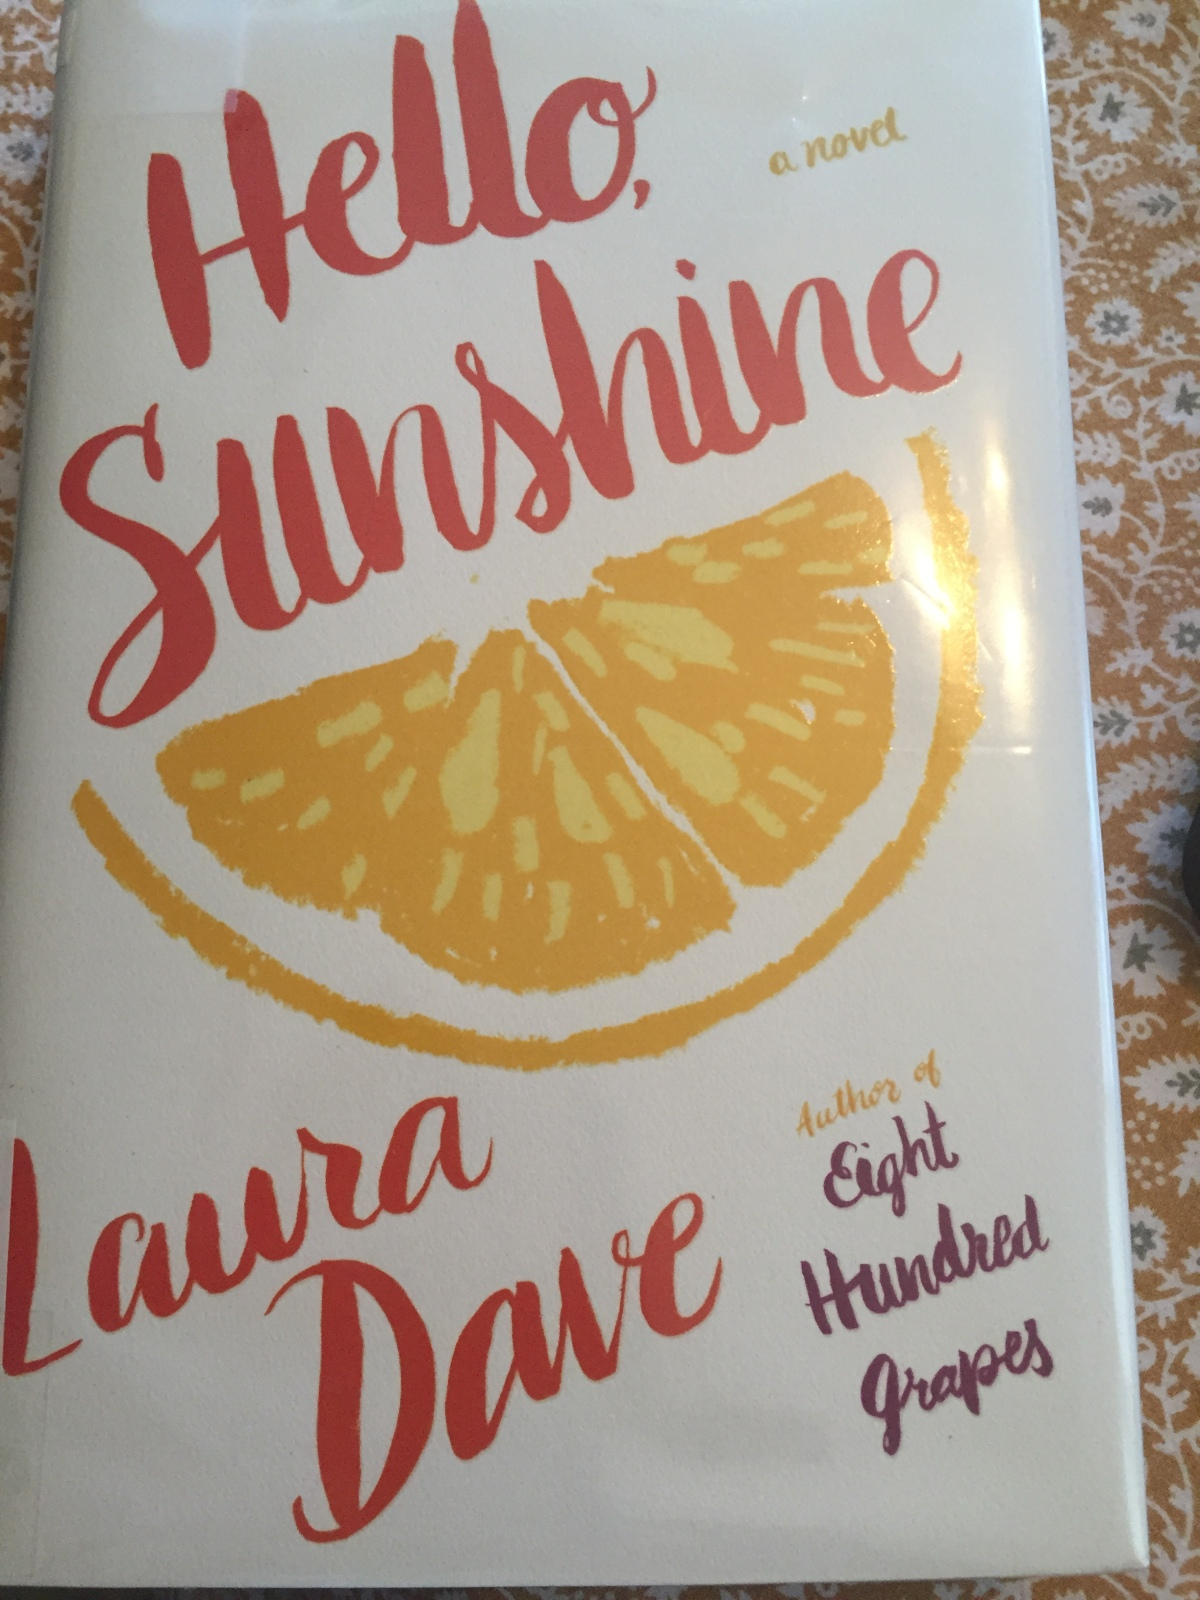 Beach House Book #9 – Hello, Sunshine by Laura Dave